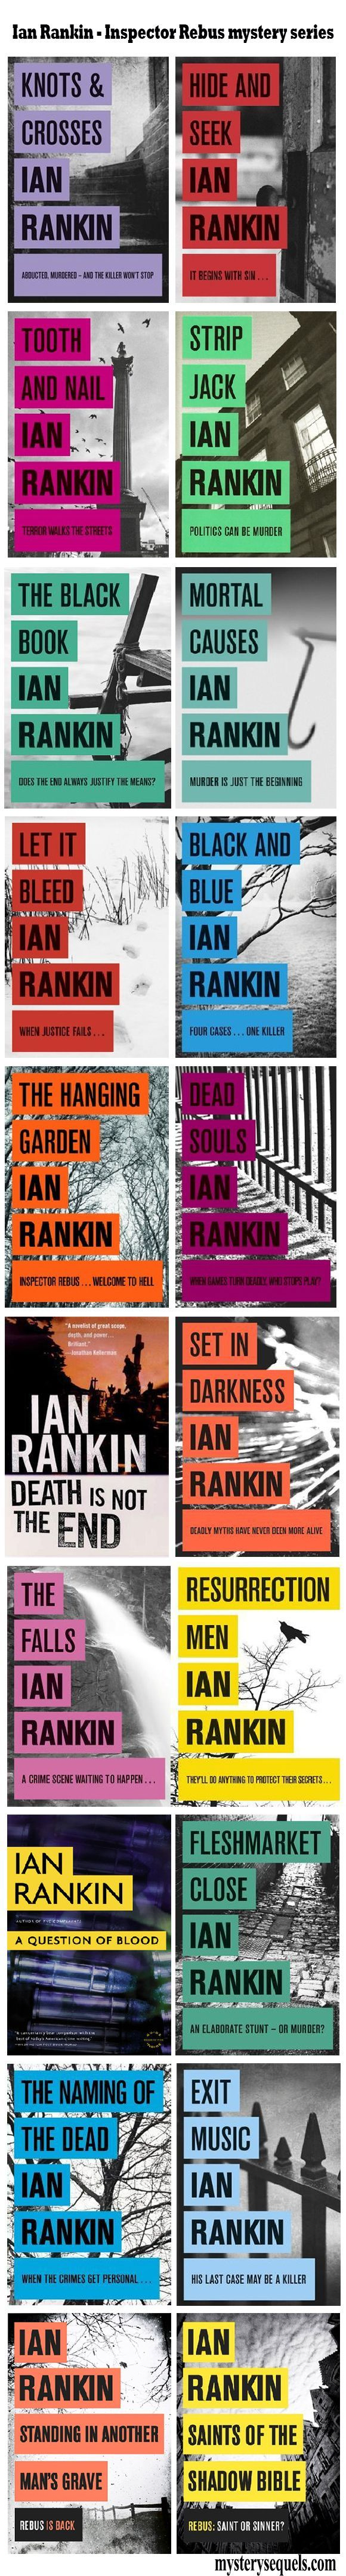 Ian Ranking - Inspector Rebus mystery series